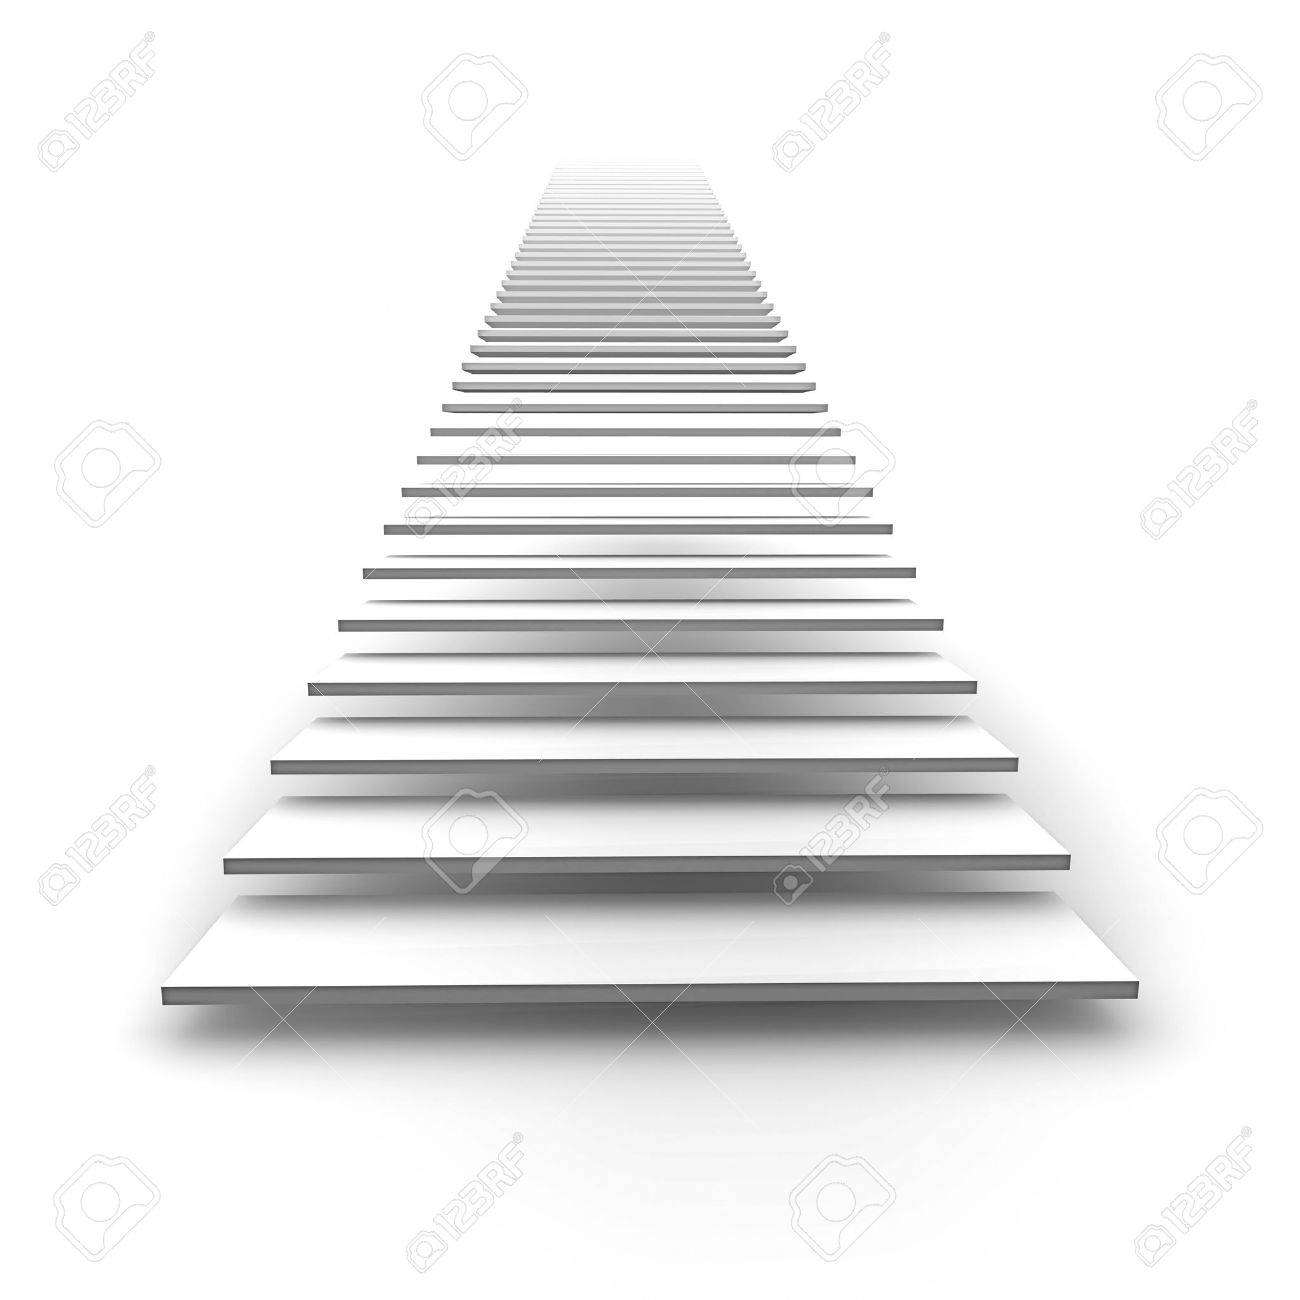 An image of a white stairway to heaven Stock Photo - 7072855